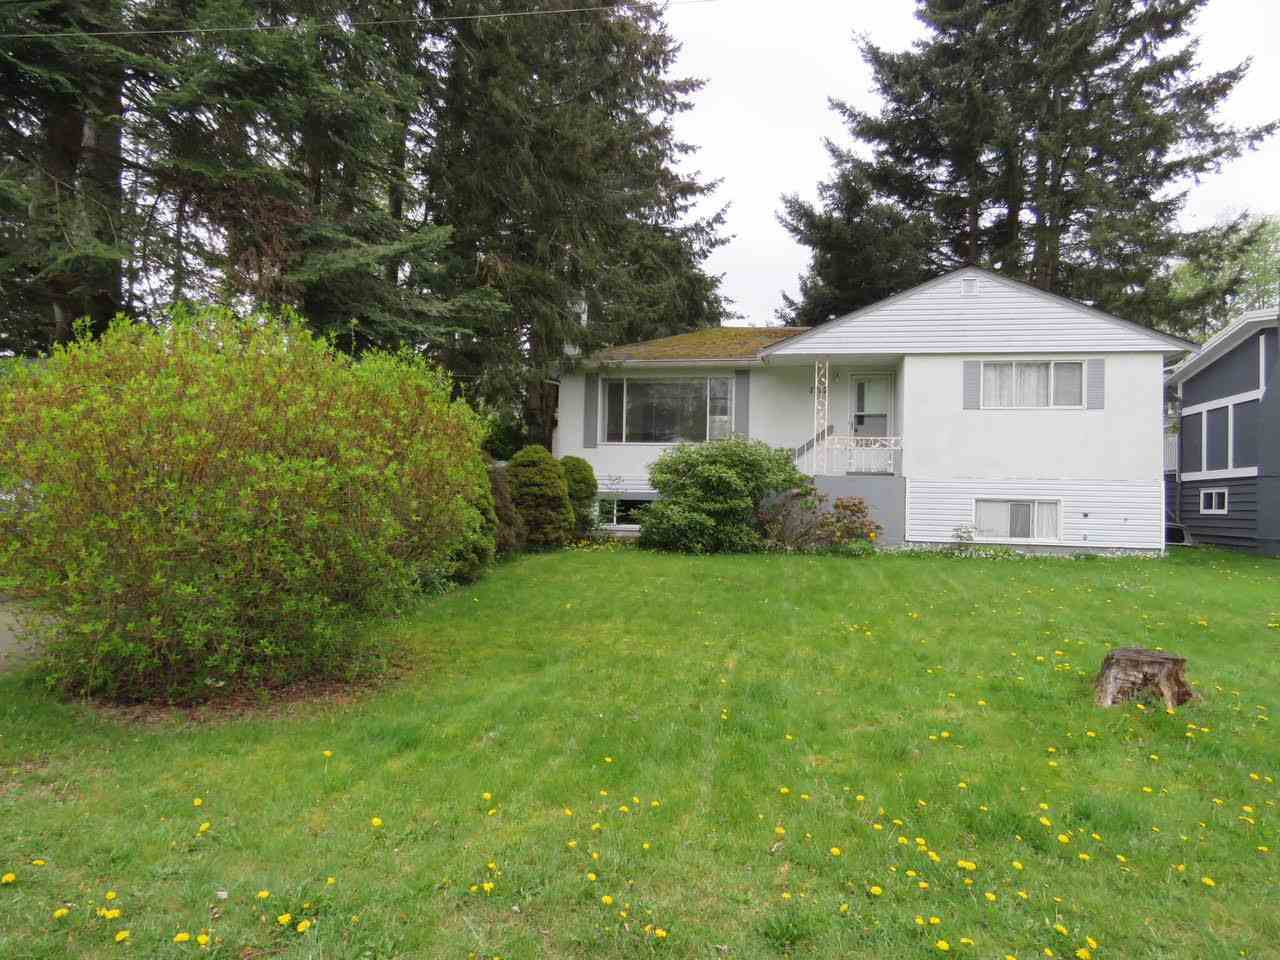 Main Photo: 1717 157 Street in Surrey: King George Corridor House for sale (South Surrey White Rock)  : MLS®# R2263740